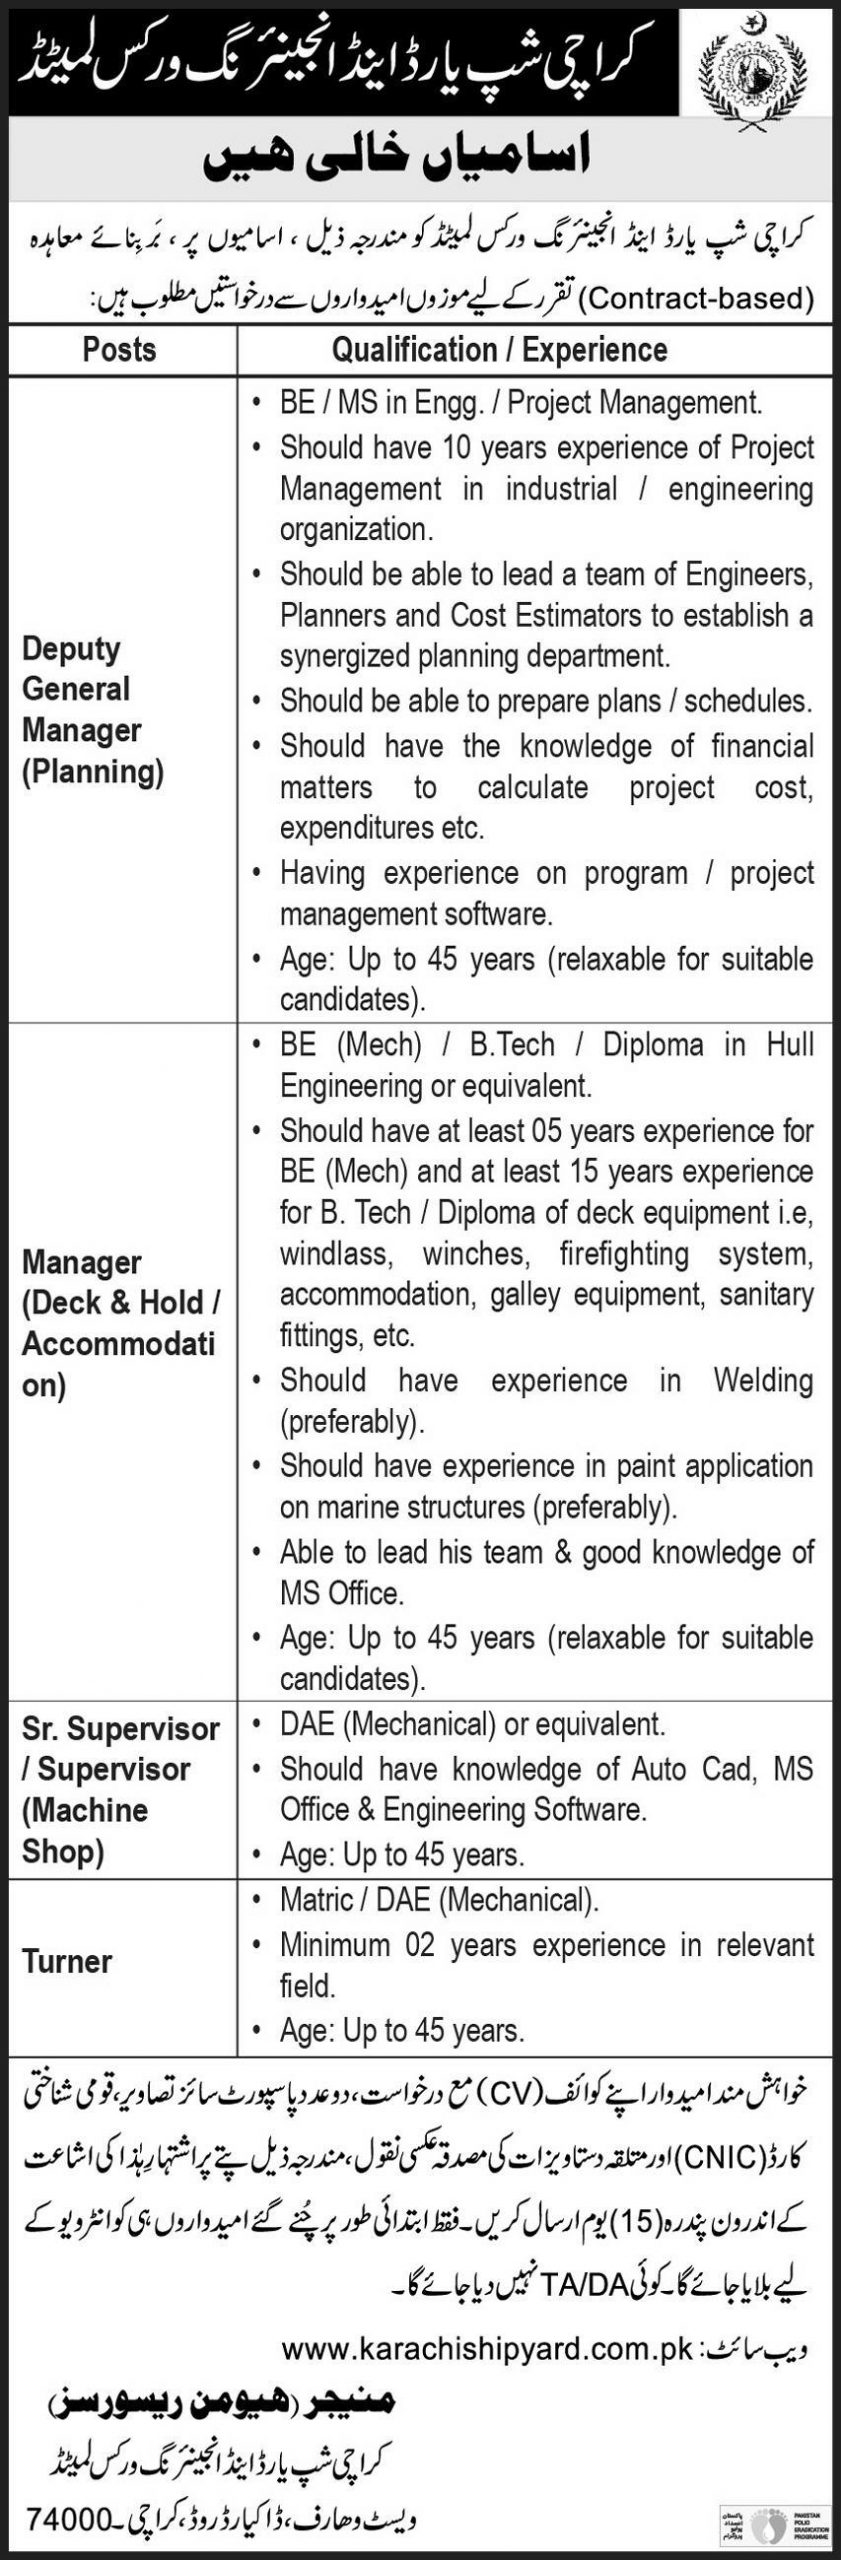 Karachi Shipyard & Engineering Works Limited Jobs August 2021 For Supervisors and Other Staff